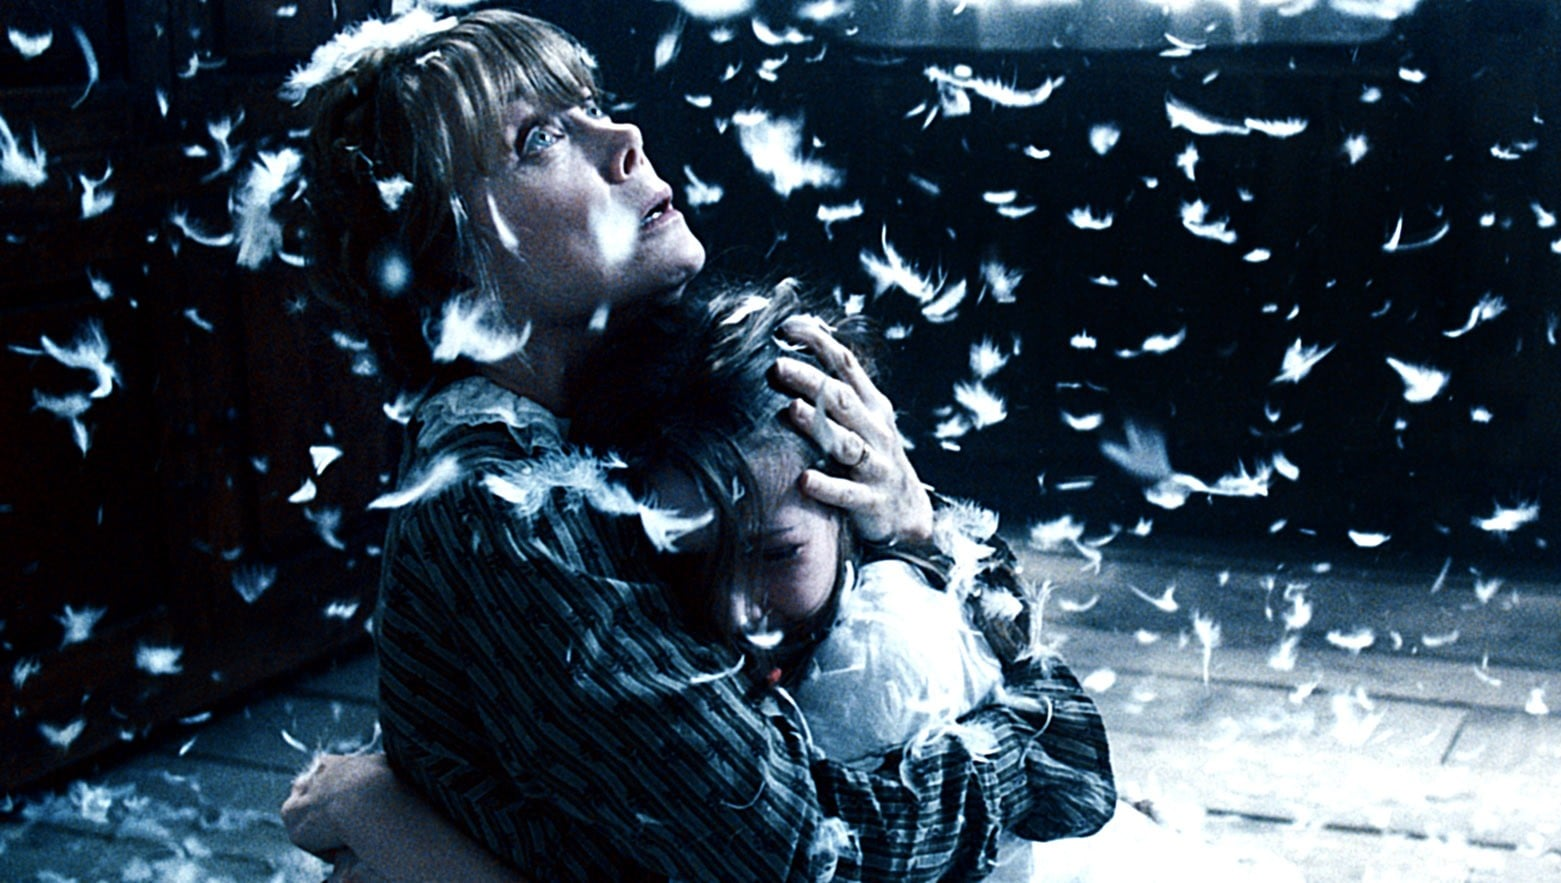 Poltergeist activity in horror film, An American Haunting